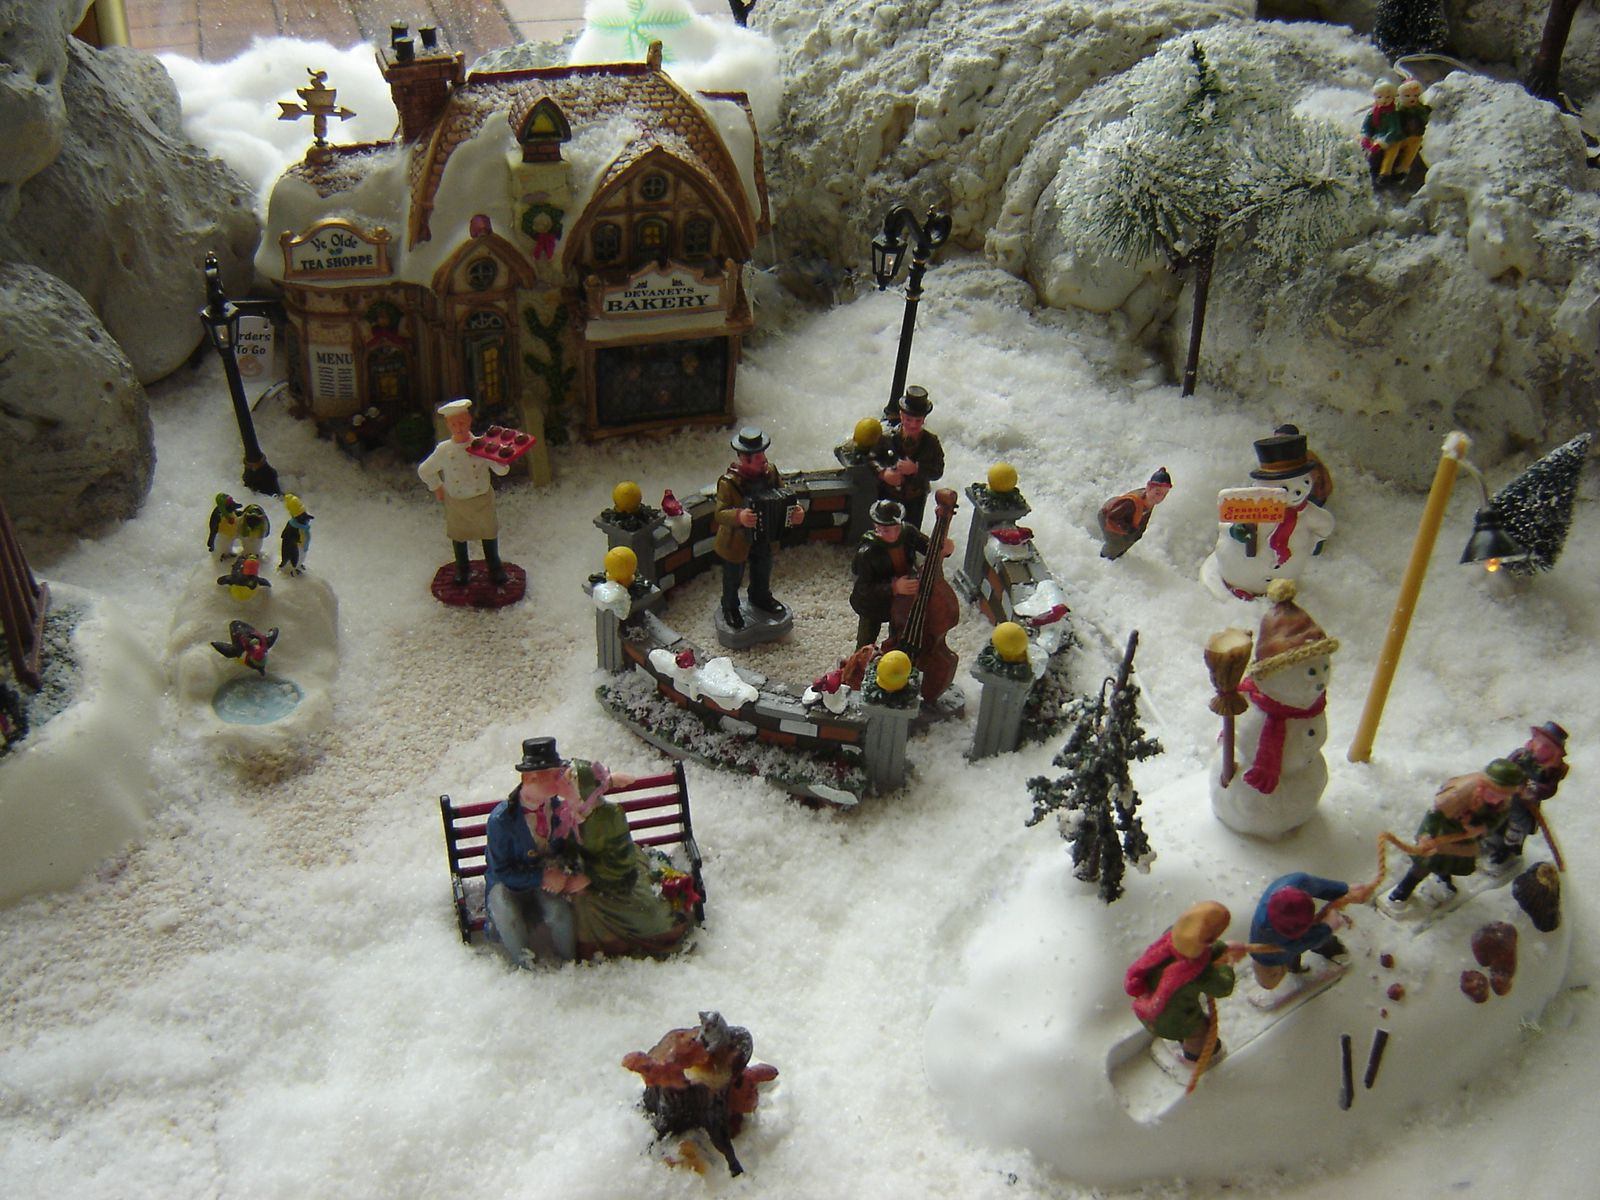 No l 2008 le d clic les villages miniatures de no l de lalie - Village de noel miniature ...